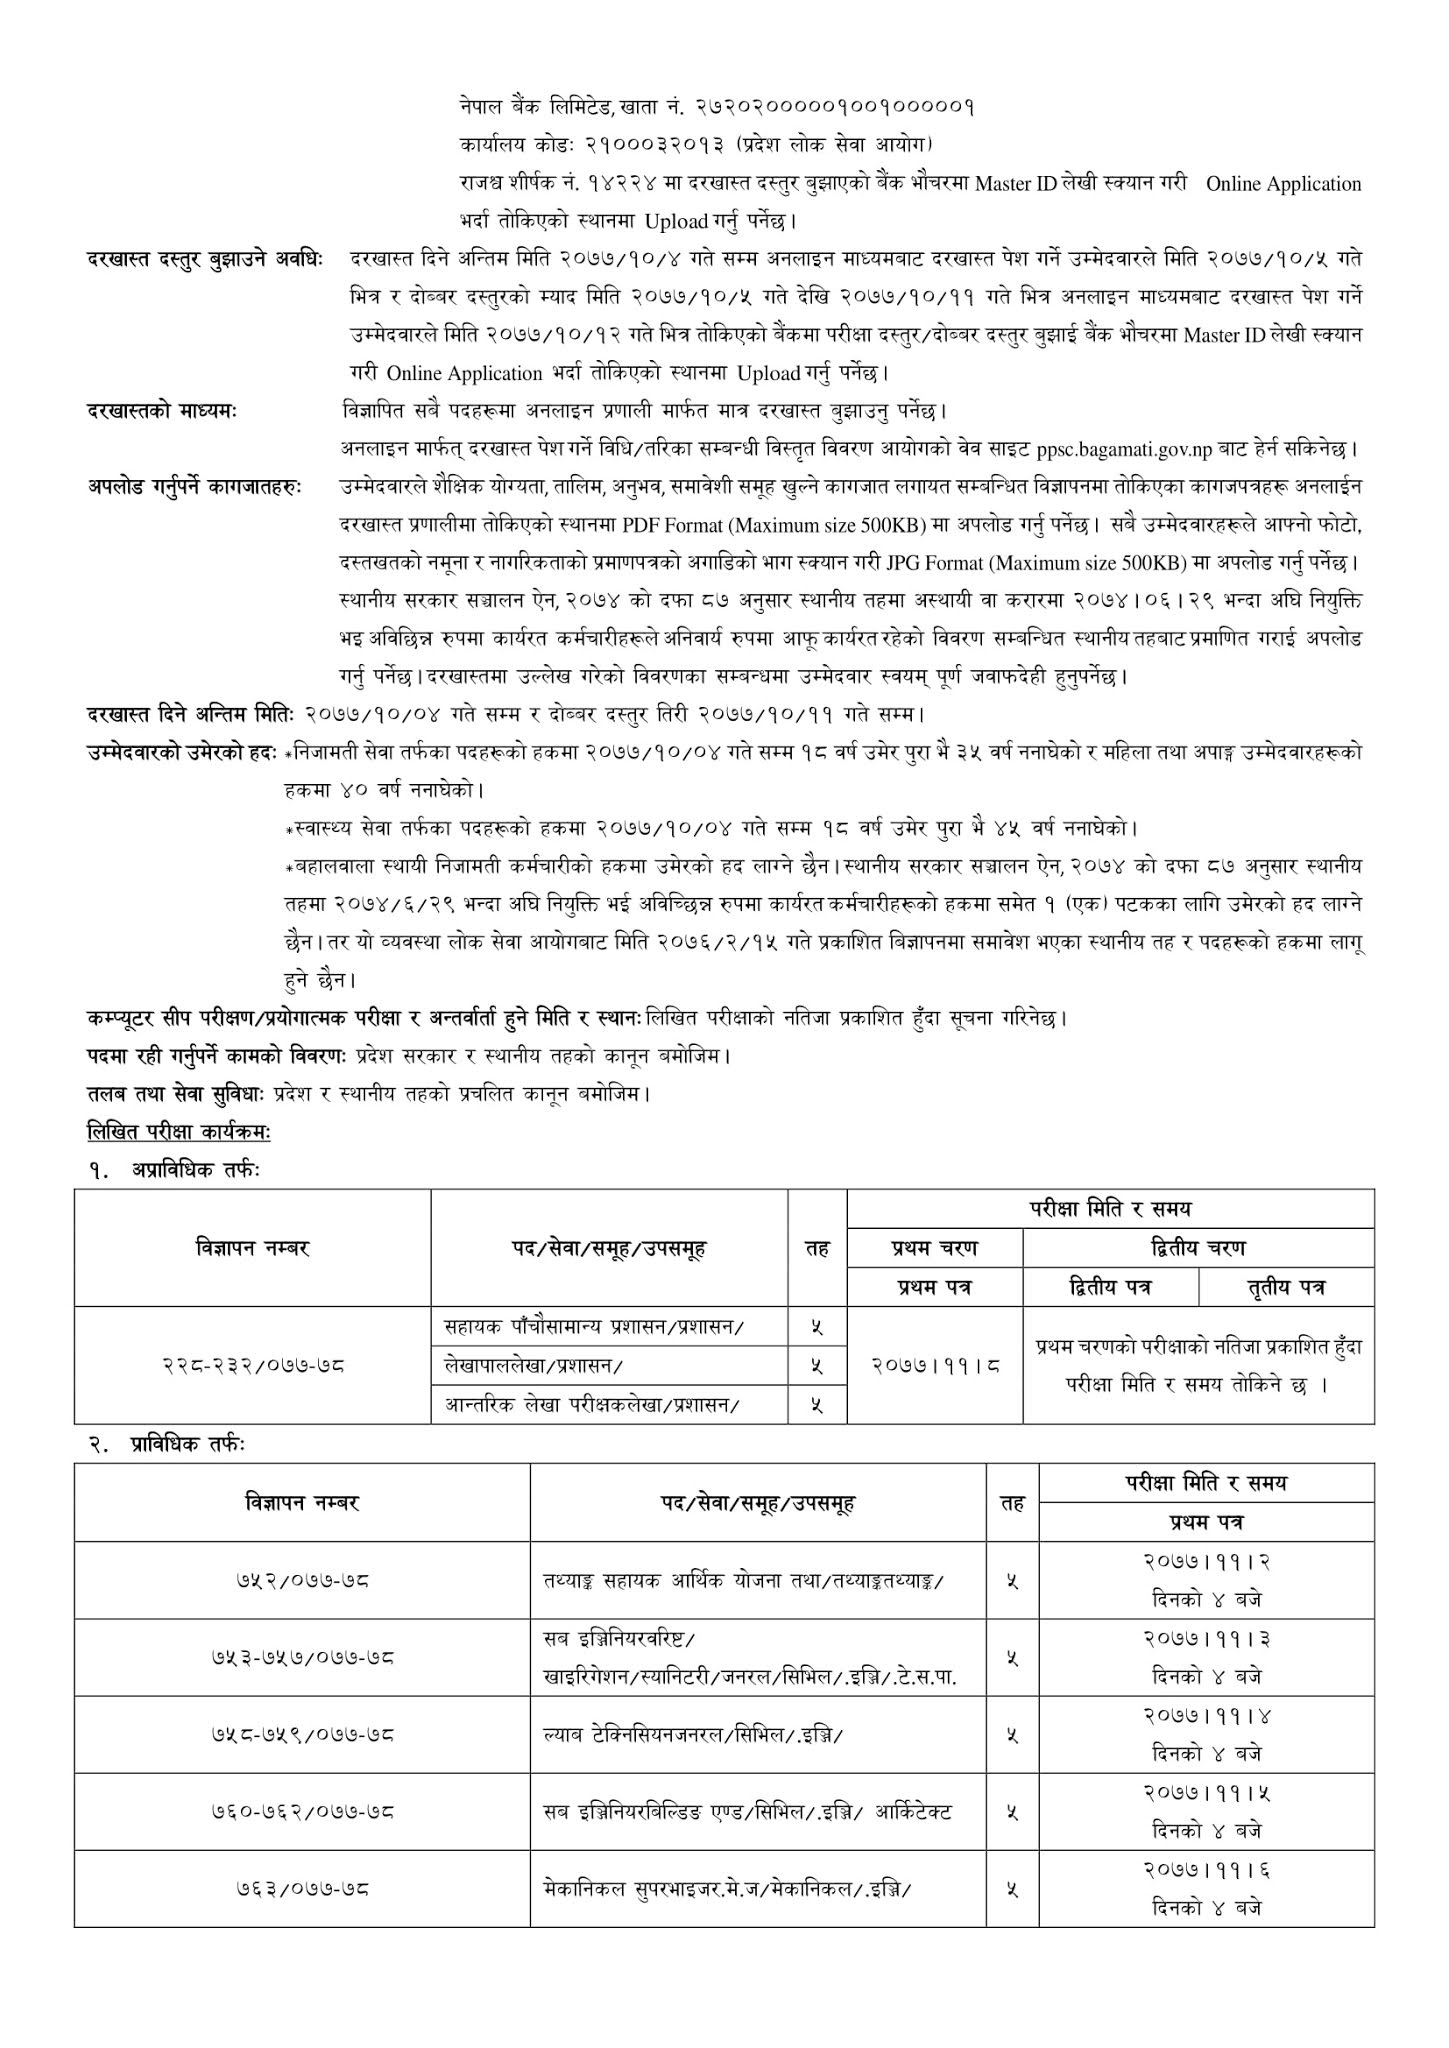 Huge Number of Vacancies of Level 5 Announced By Bagmati Pradesh Lok Sewa Aayog